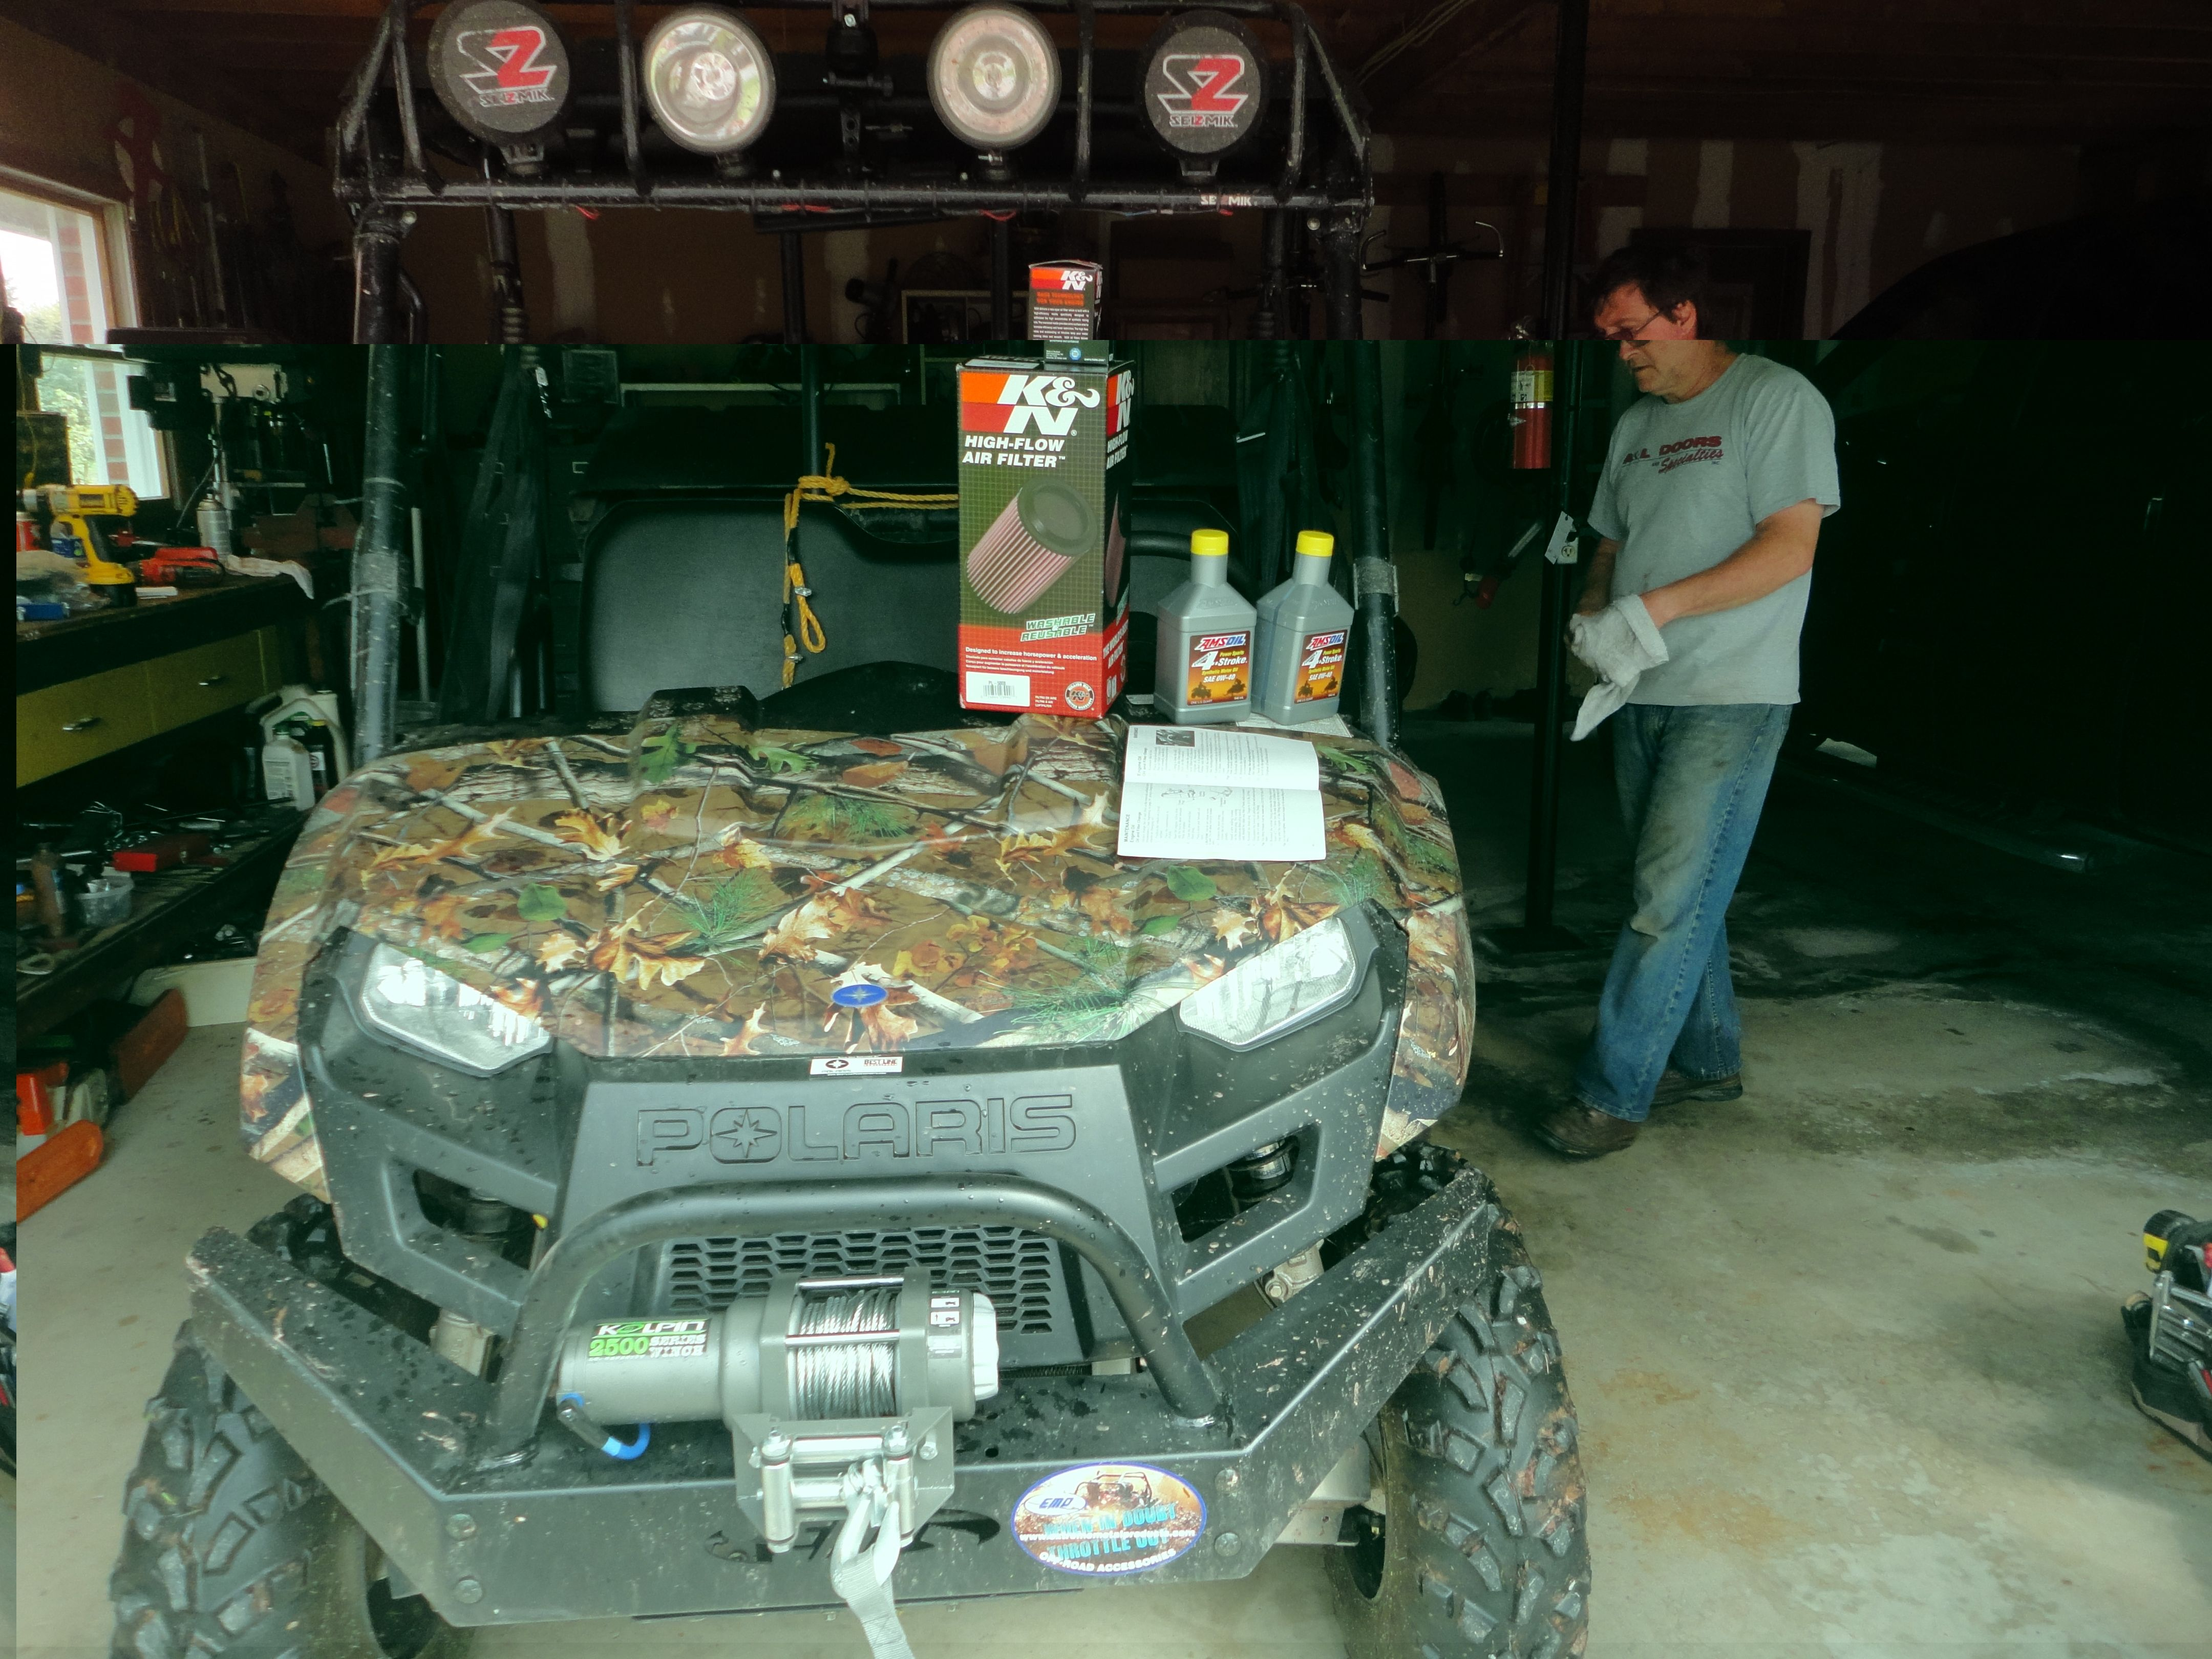 Atvs And Utvs Used For Racing Trail Riding Heavy Hauling And